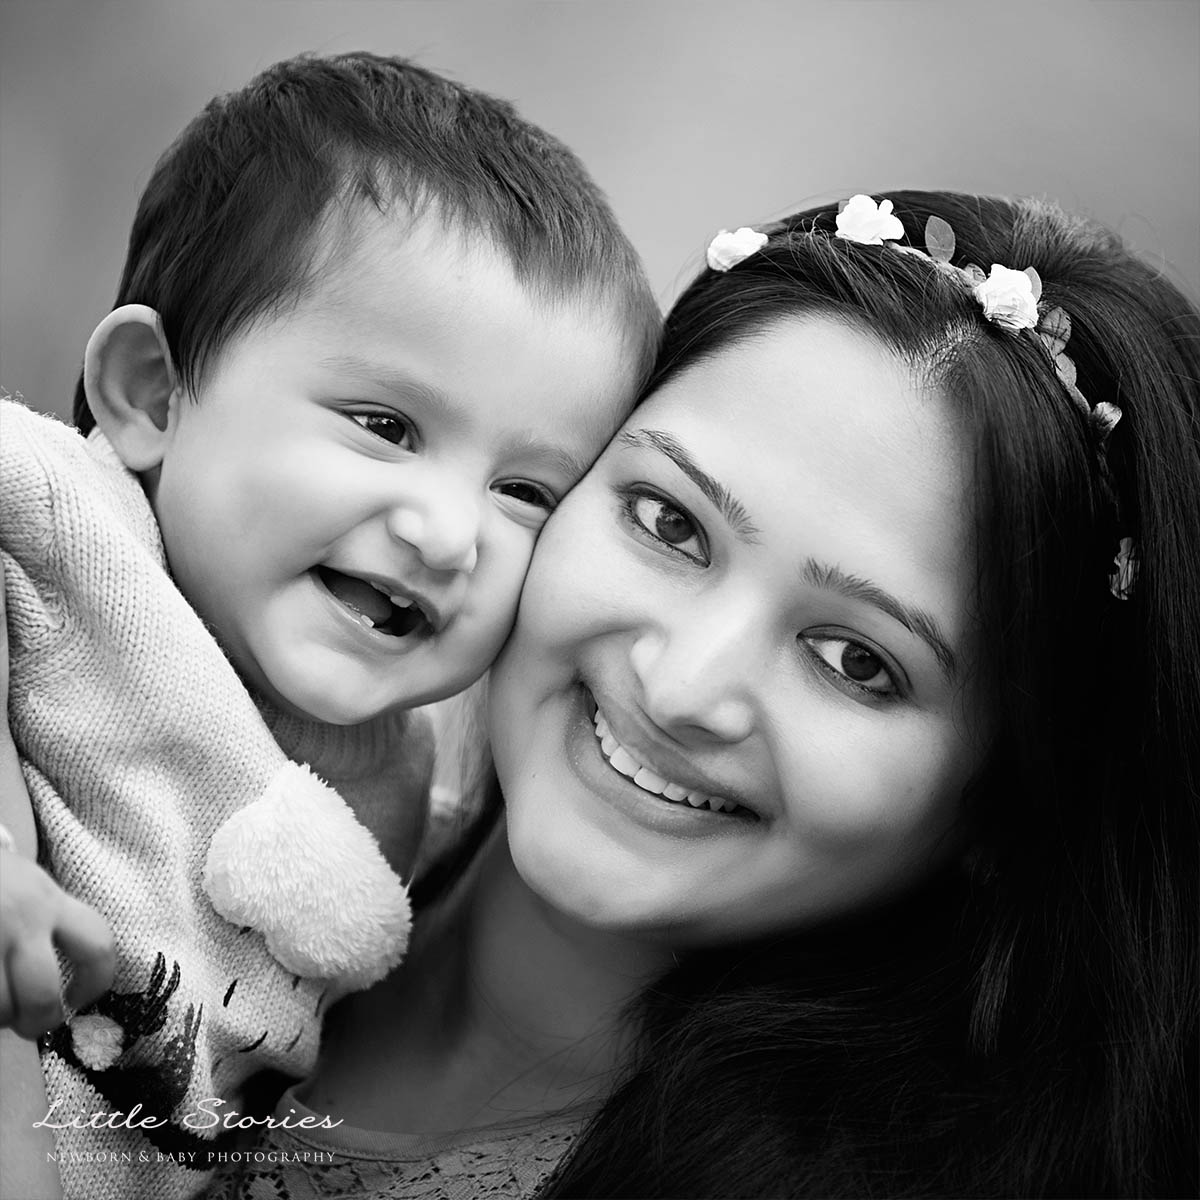 little-stories-kids-photography-happy-stories-geetanjali